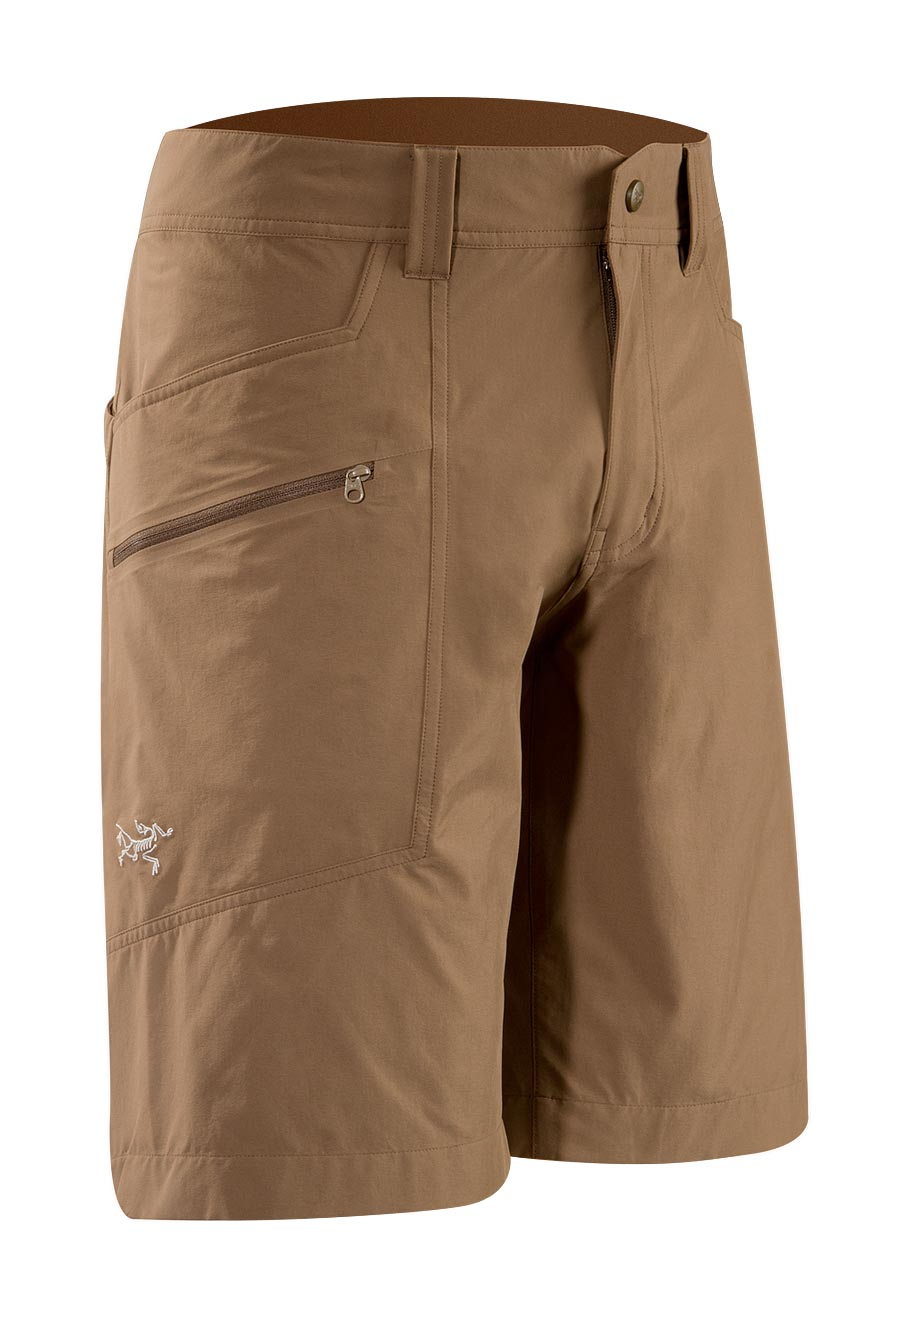 Arcteryx Nubian Brown Perimeter Short - New